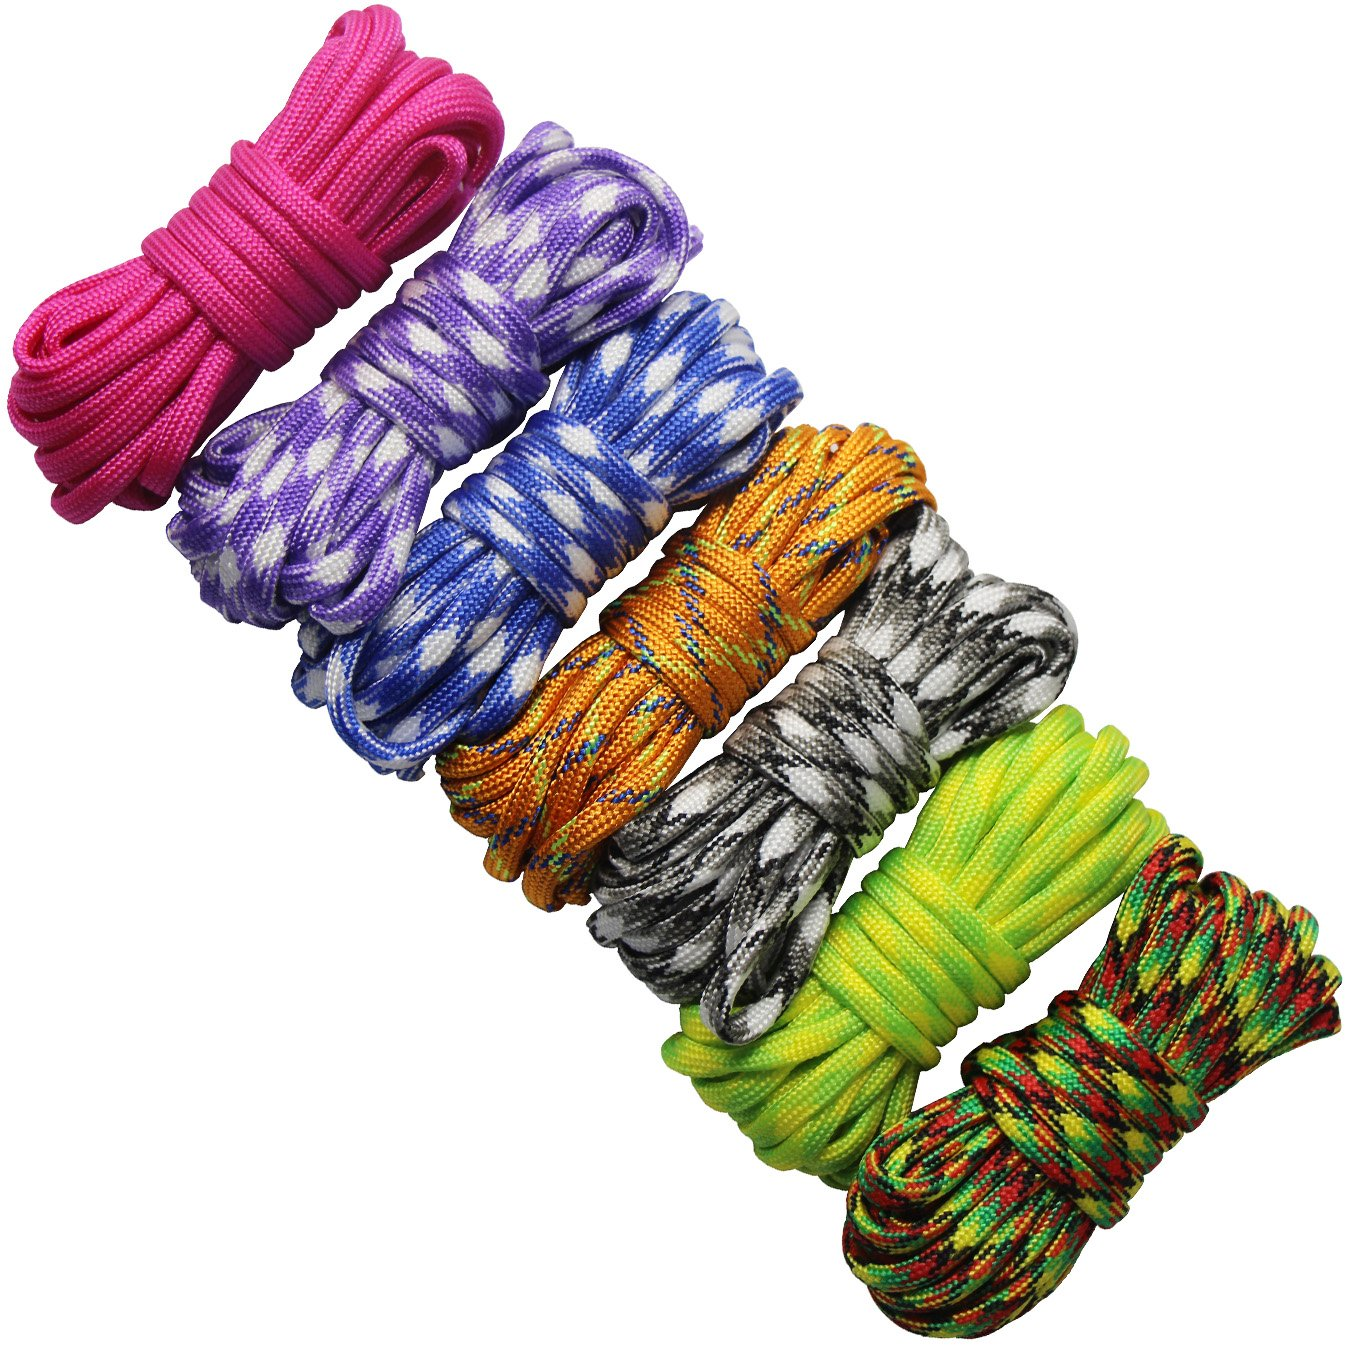 7 pcs Paracord Bracelet Cord Parachute Rope Outdoor Survival Safe Rope Set for DIY Hand Woven 10 Feet UOOOM